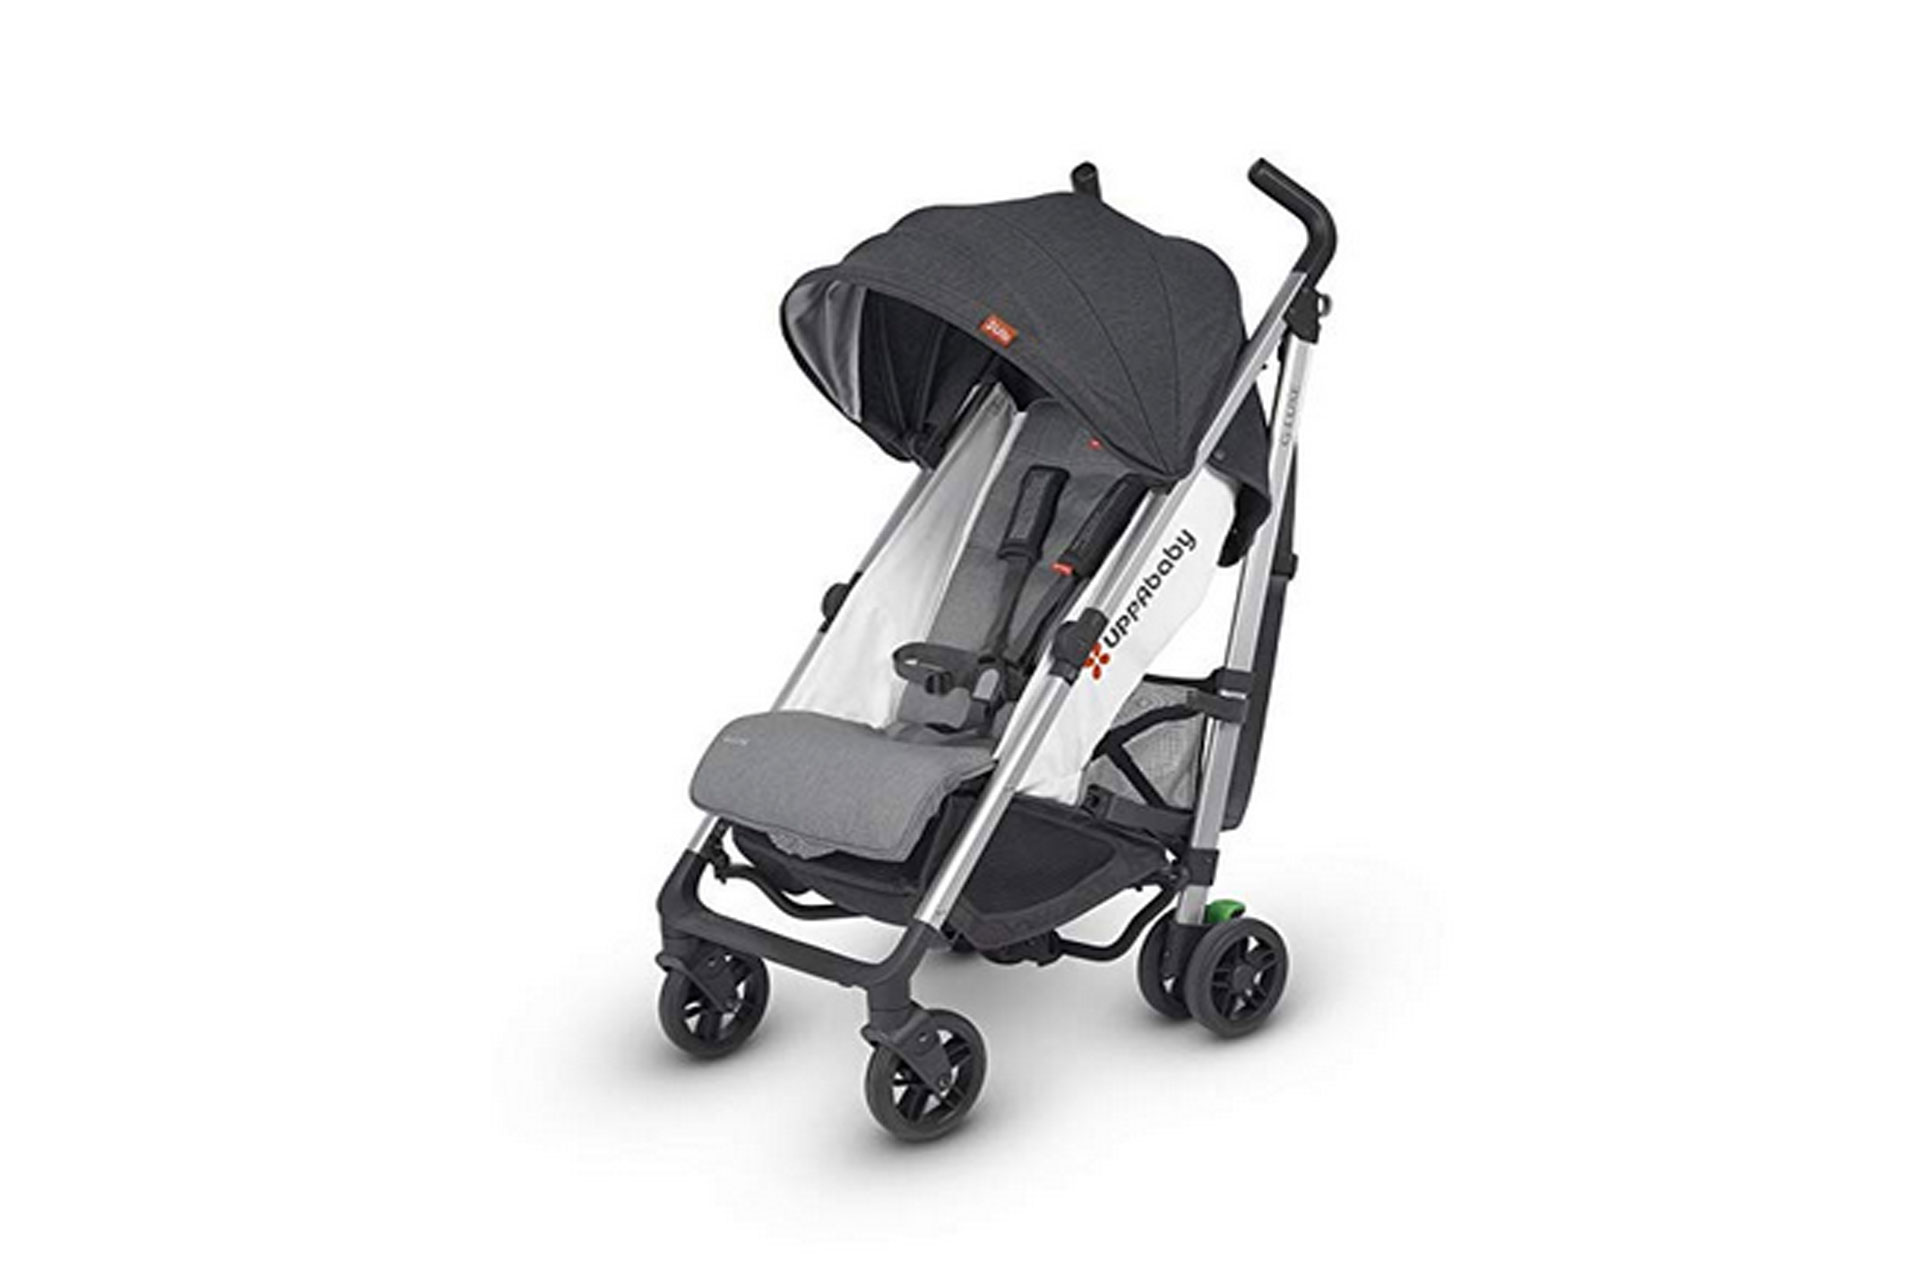 UPPAbaby G Luxe; Courtesy of Amazon